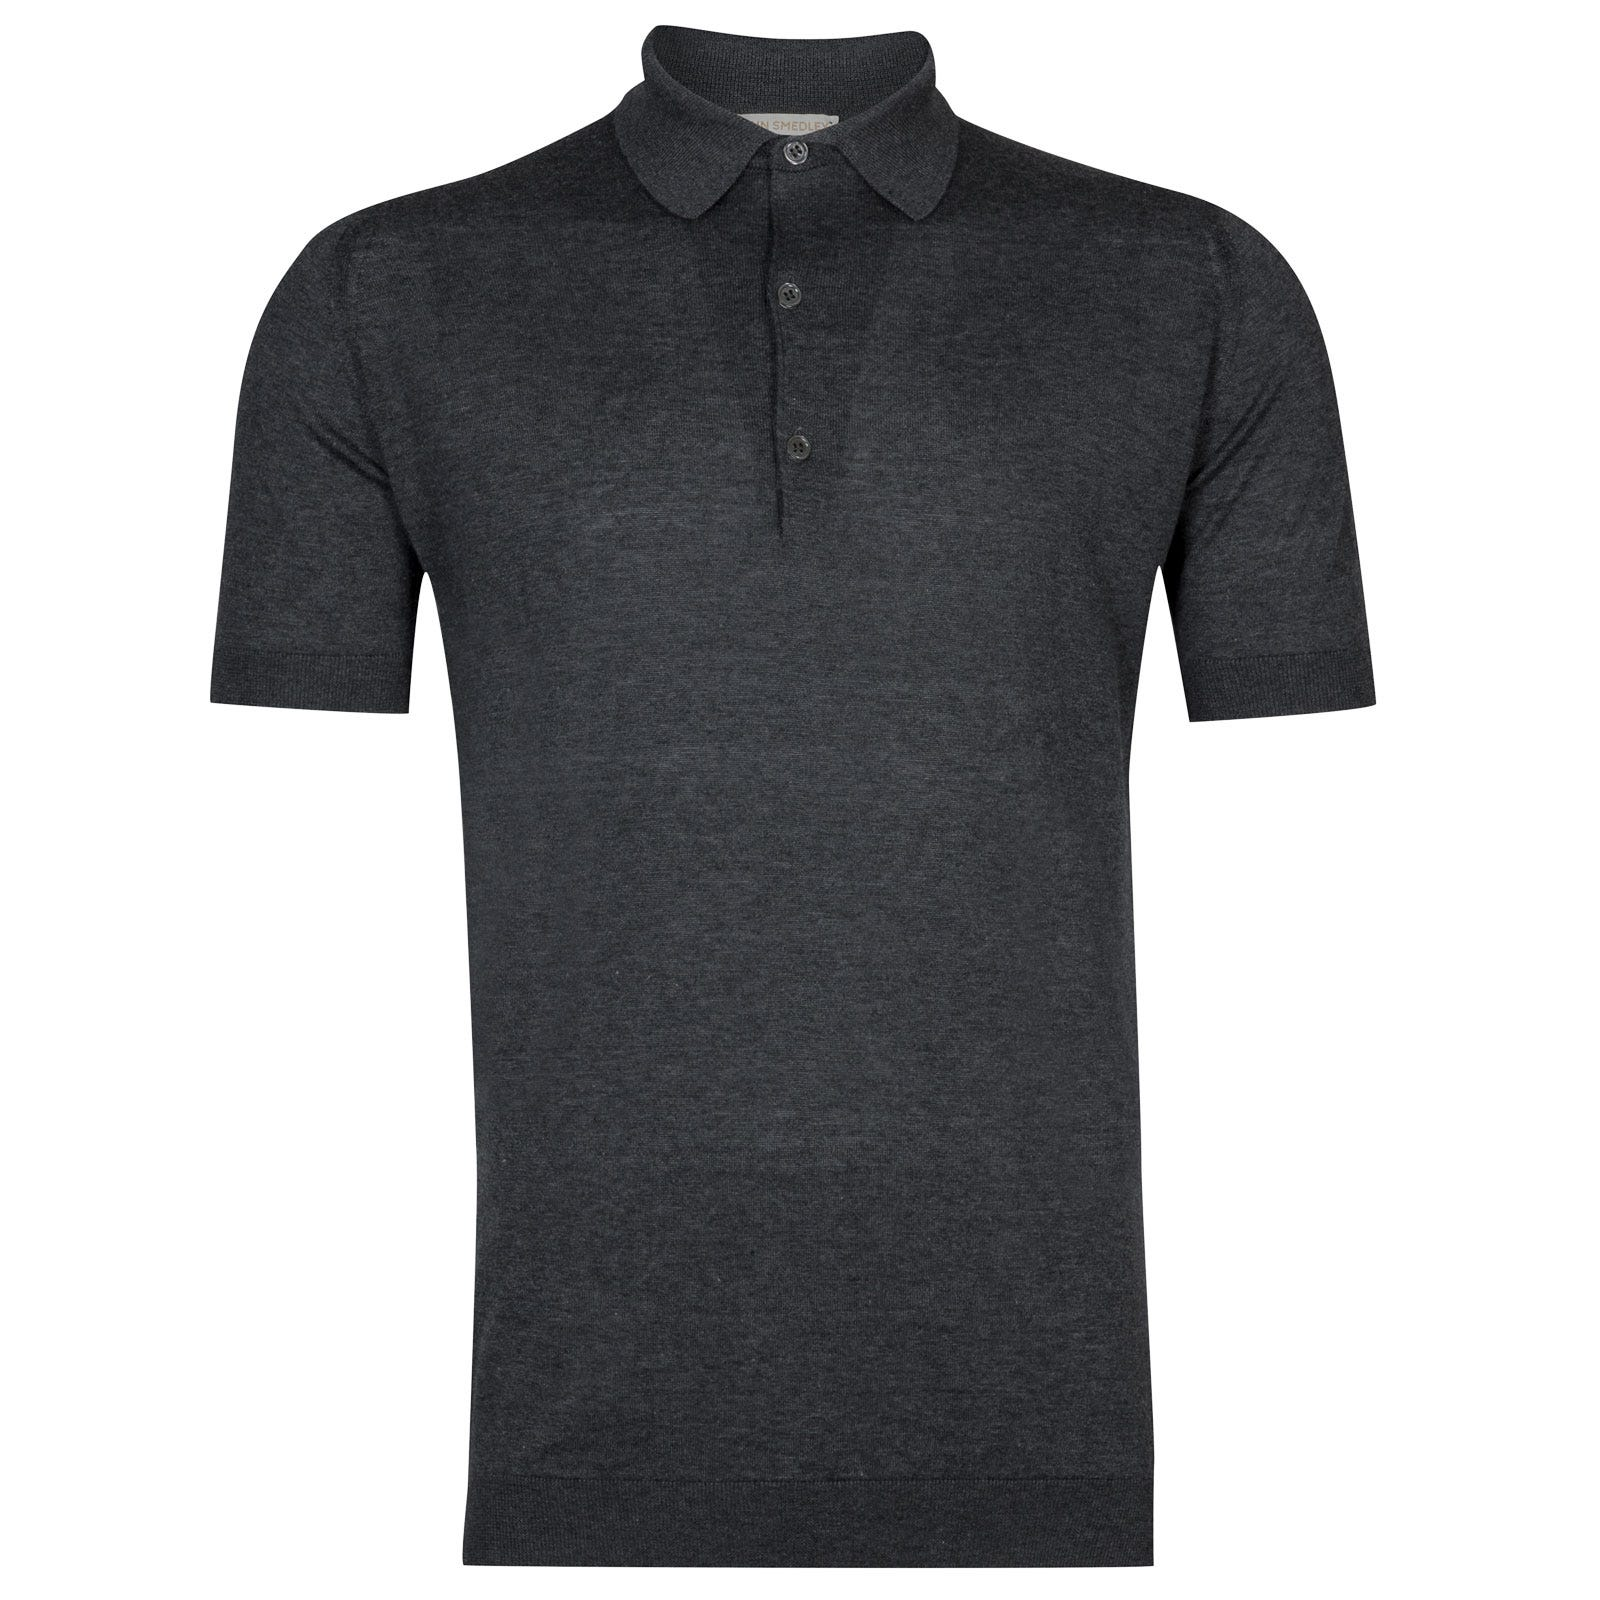 John Smedley Haddon Sea Island Cotton and Cashmere Shirt in